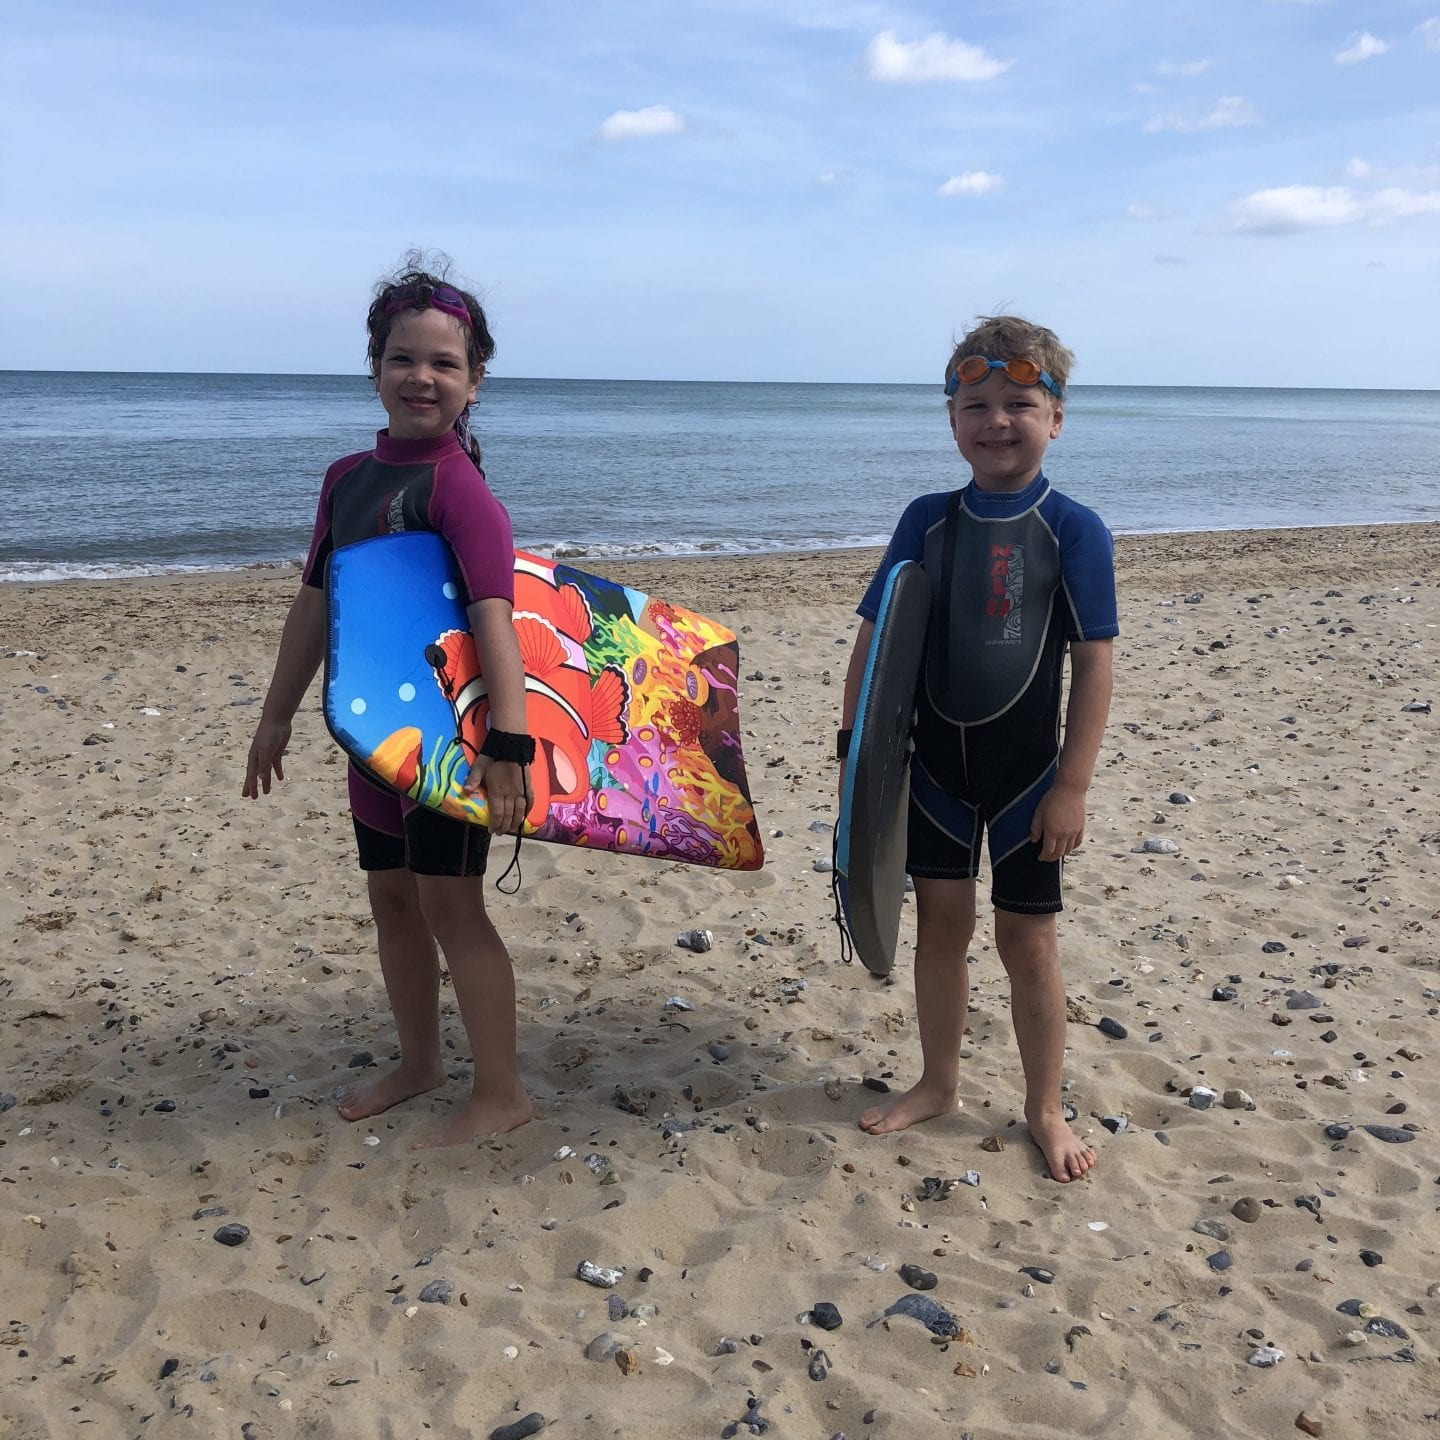 2 children holding body boards on a beach